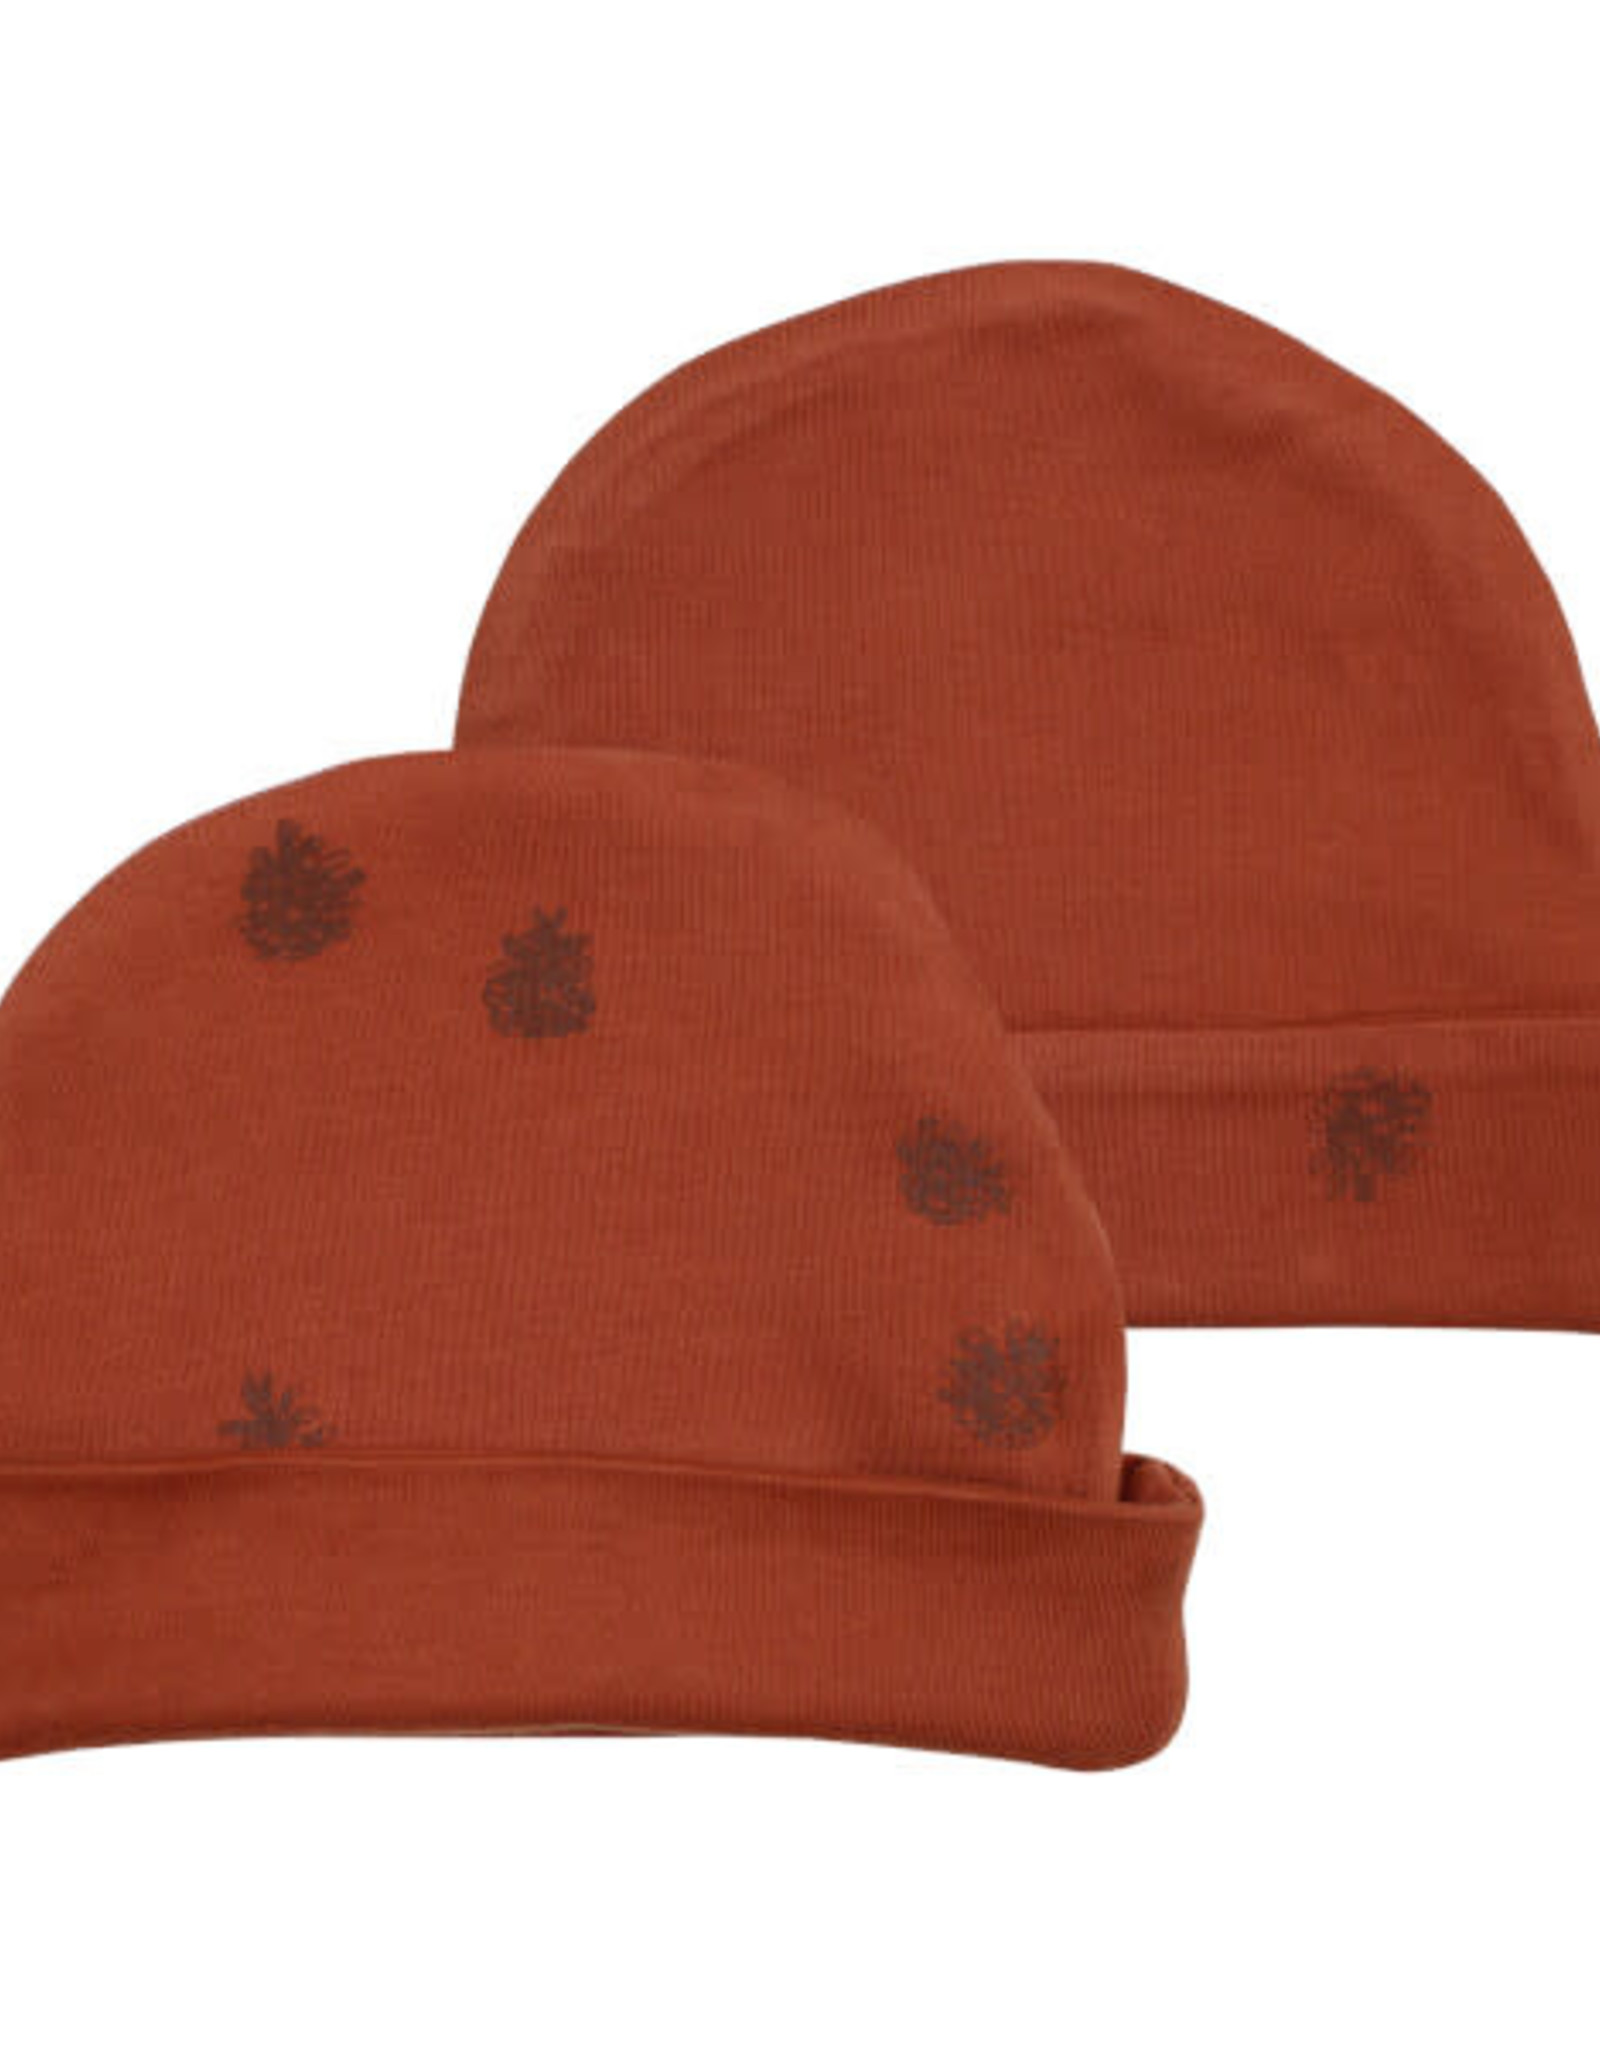 L'oved Baby Cinnamon Reversible Beanie with Pinecone Print